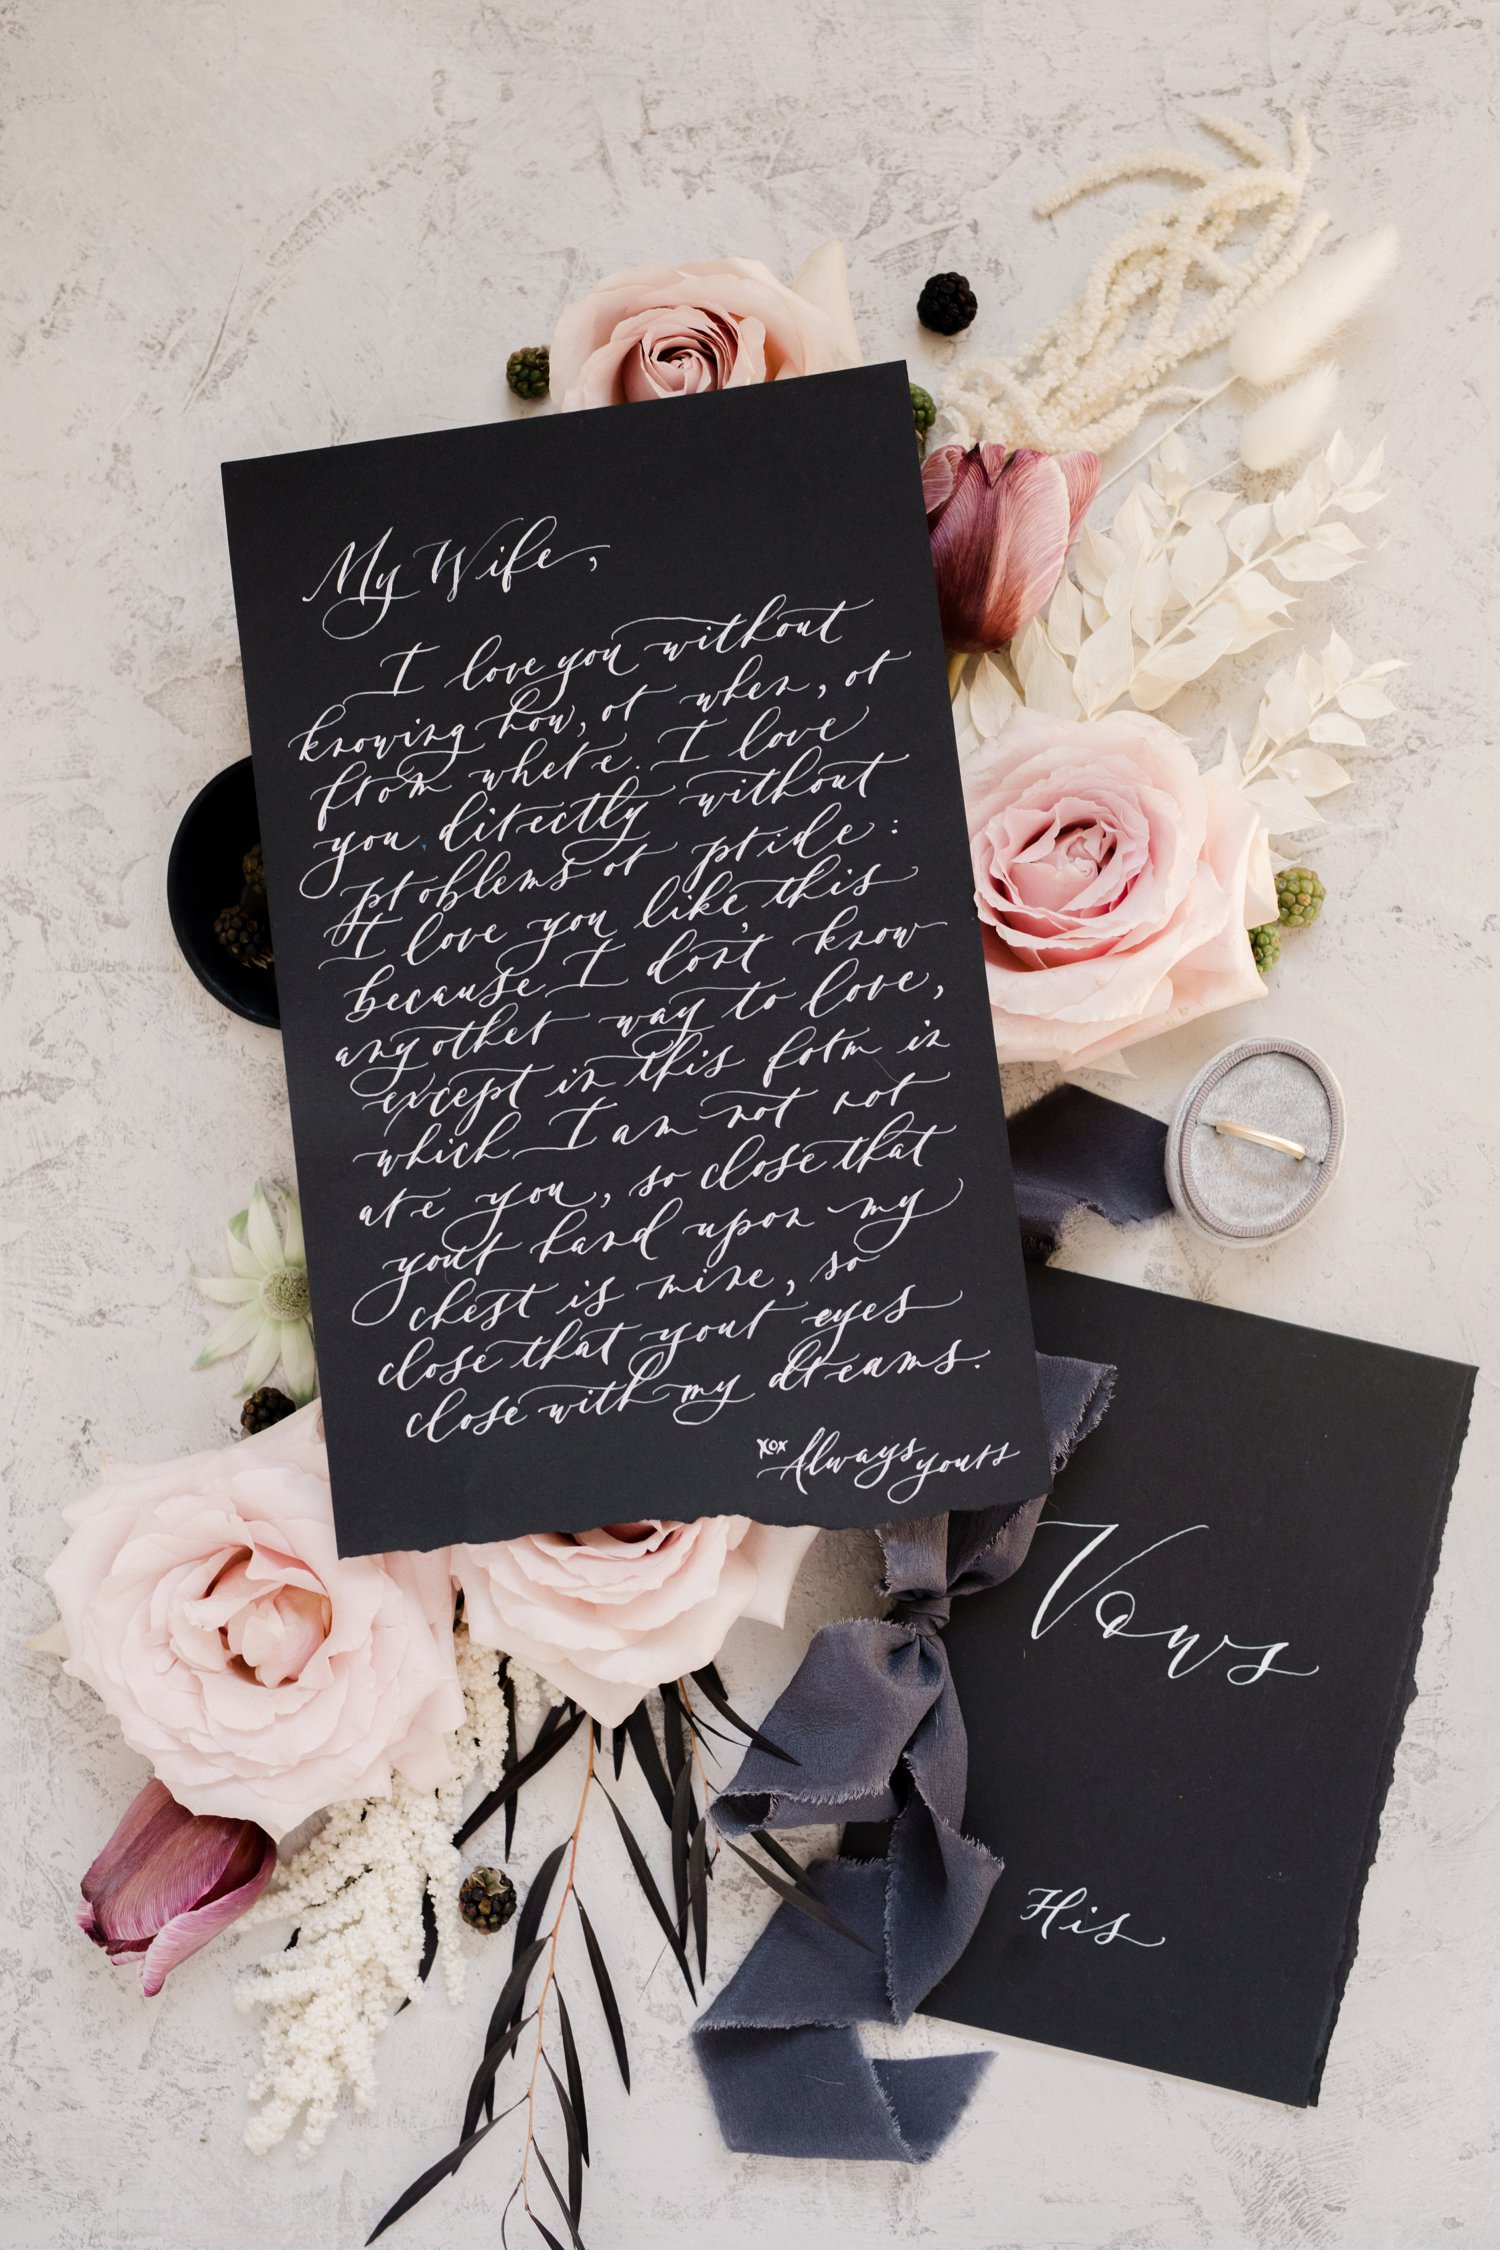 Black stationery for wedding invitation with calligraphy and hand dyed silk velvet ribbon